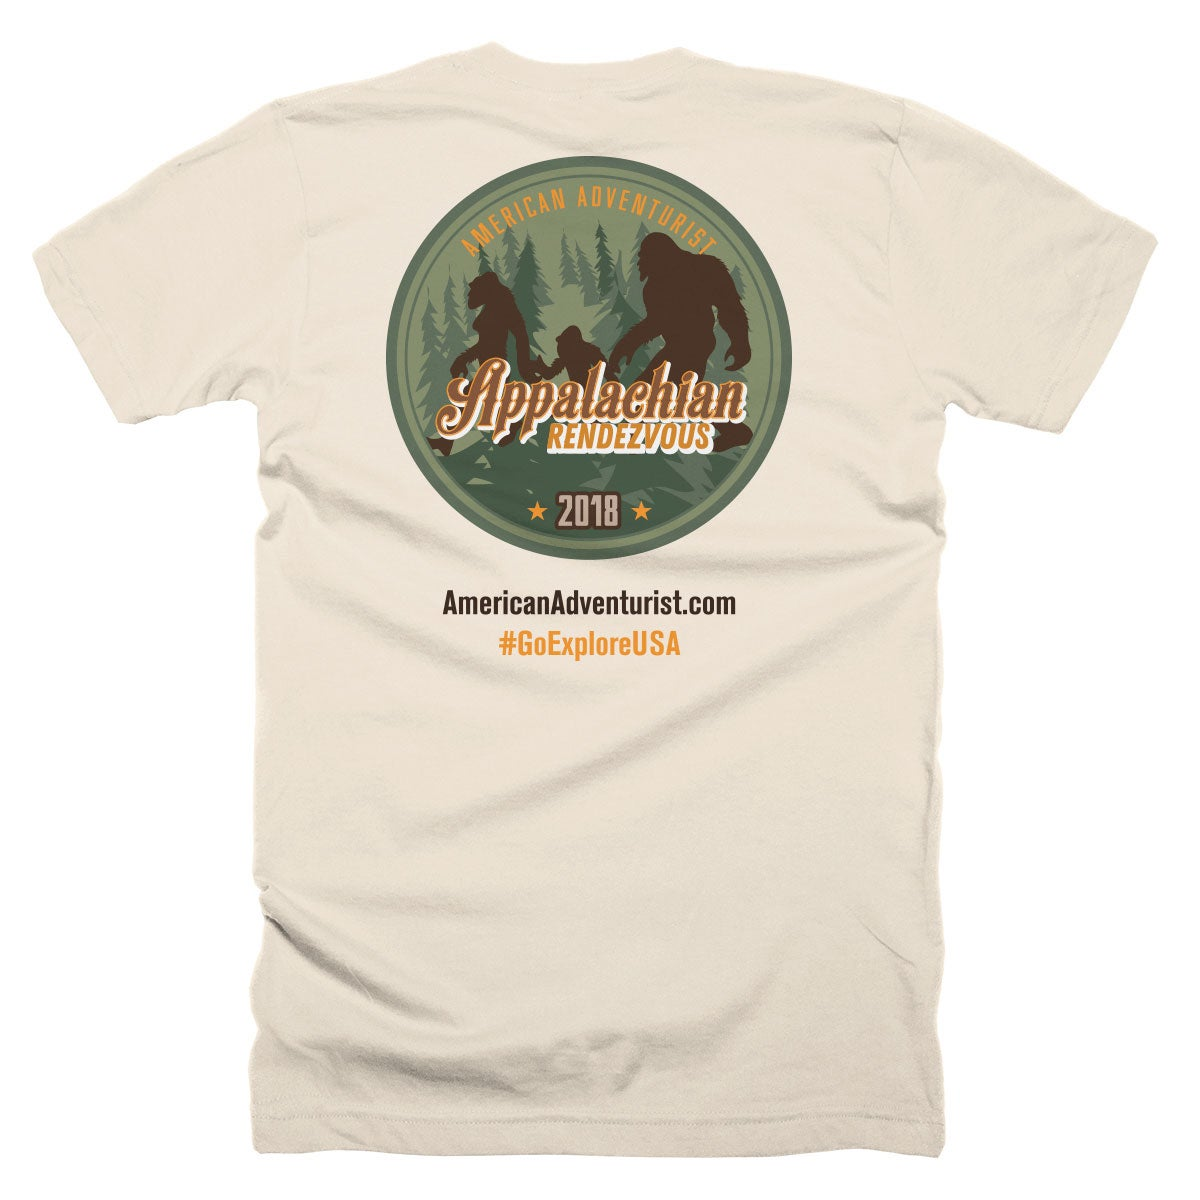 Image of 2018 Appalachian Rendezvous Tee